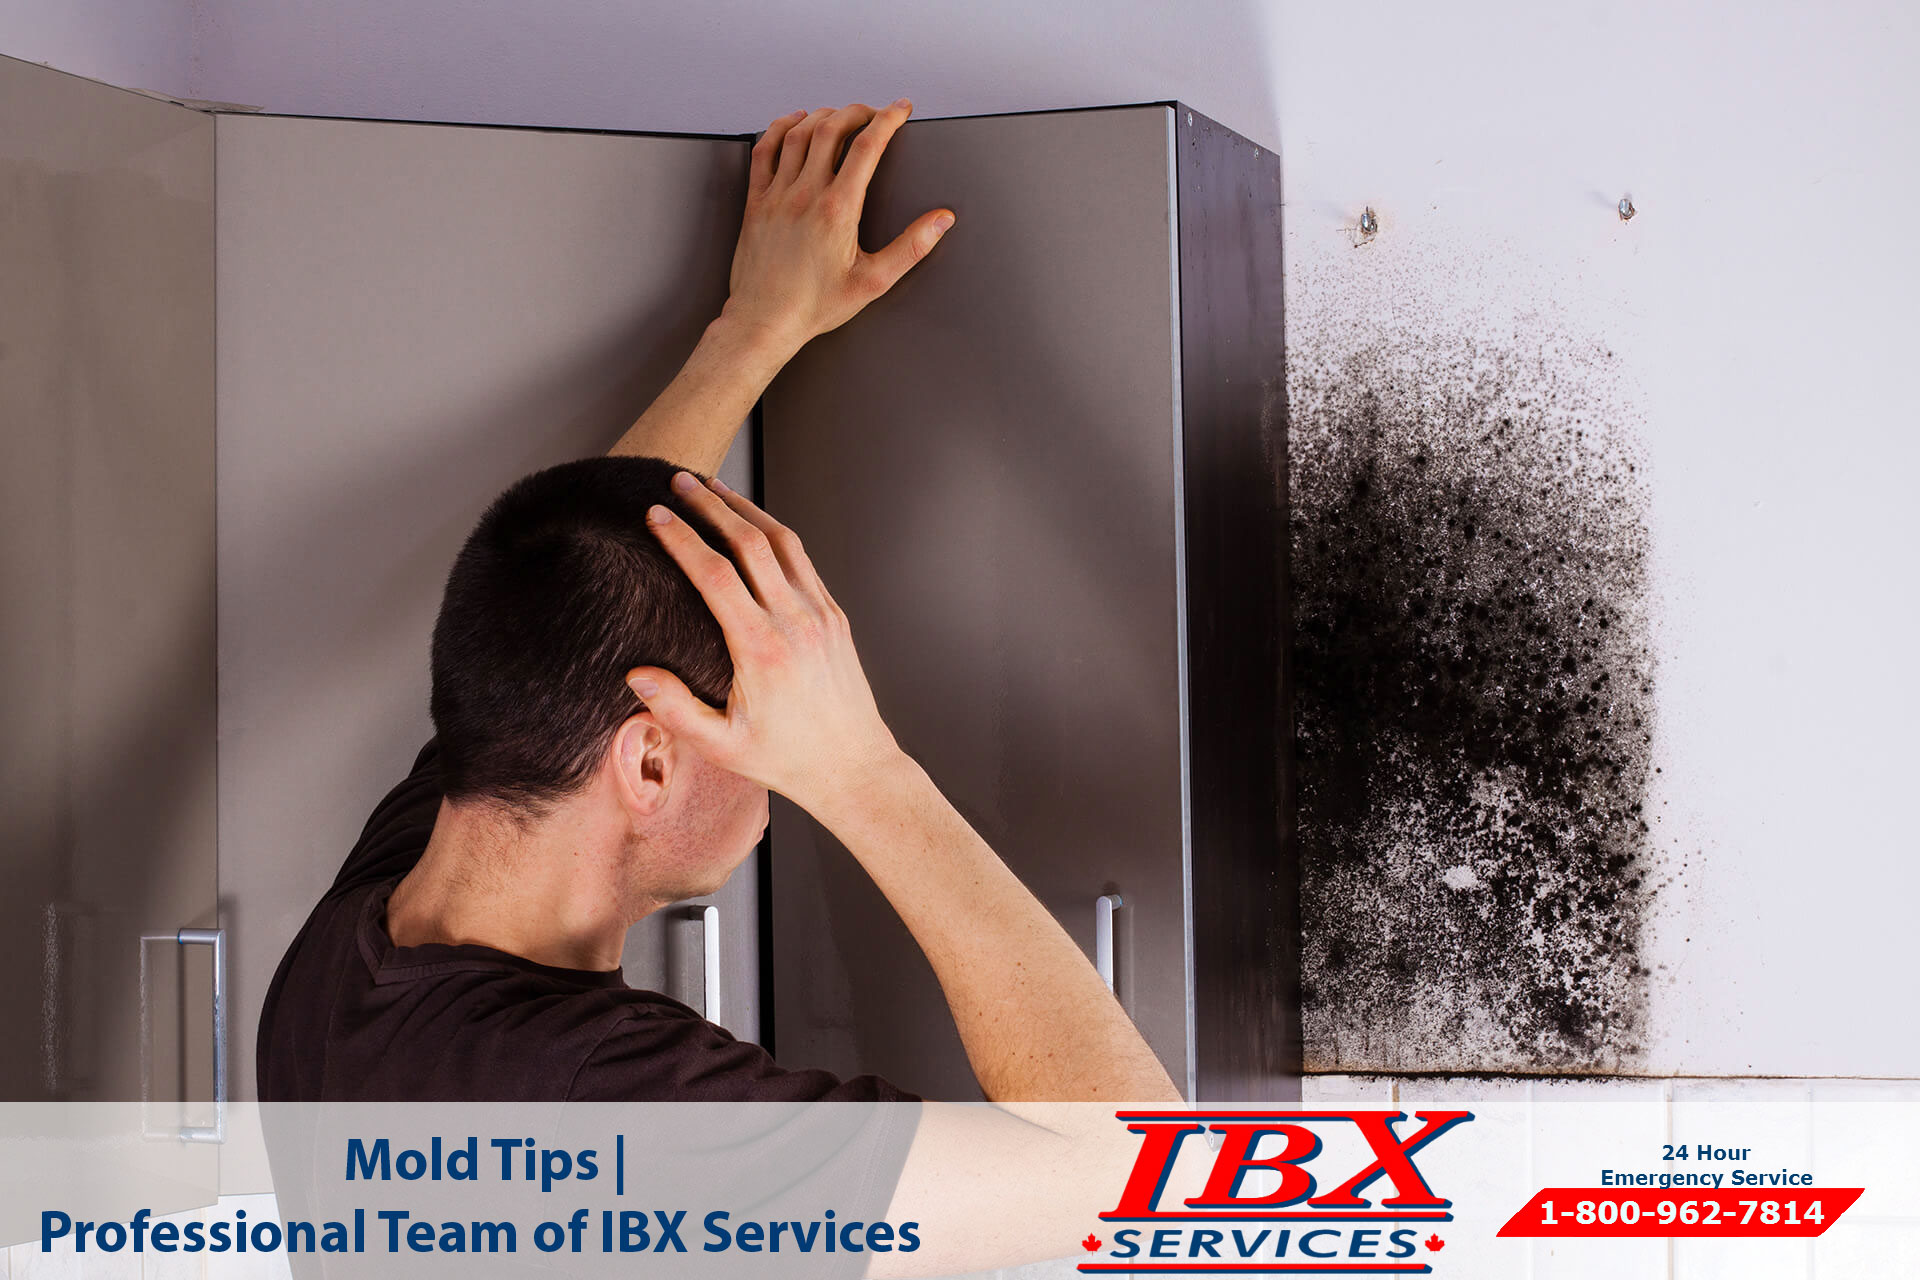 Mold Tips | Professional Team of IBX Services